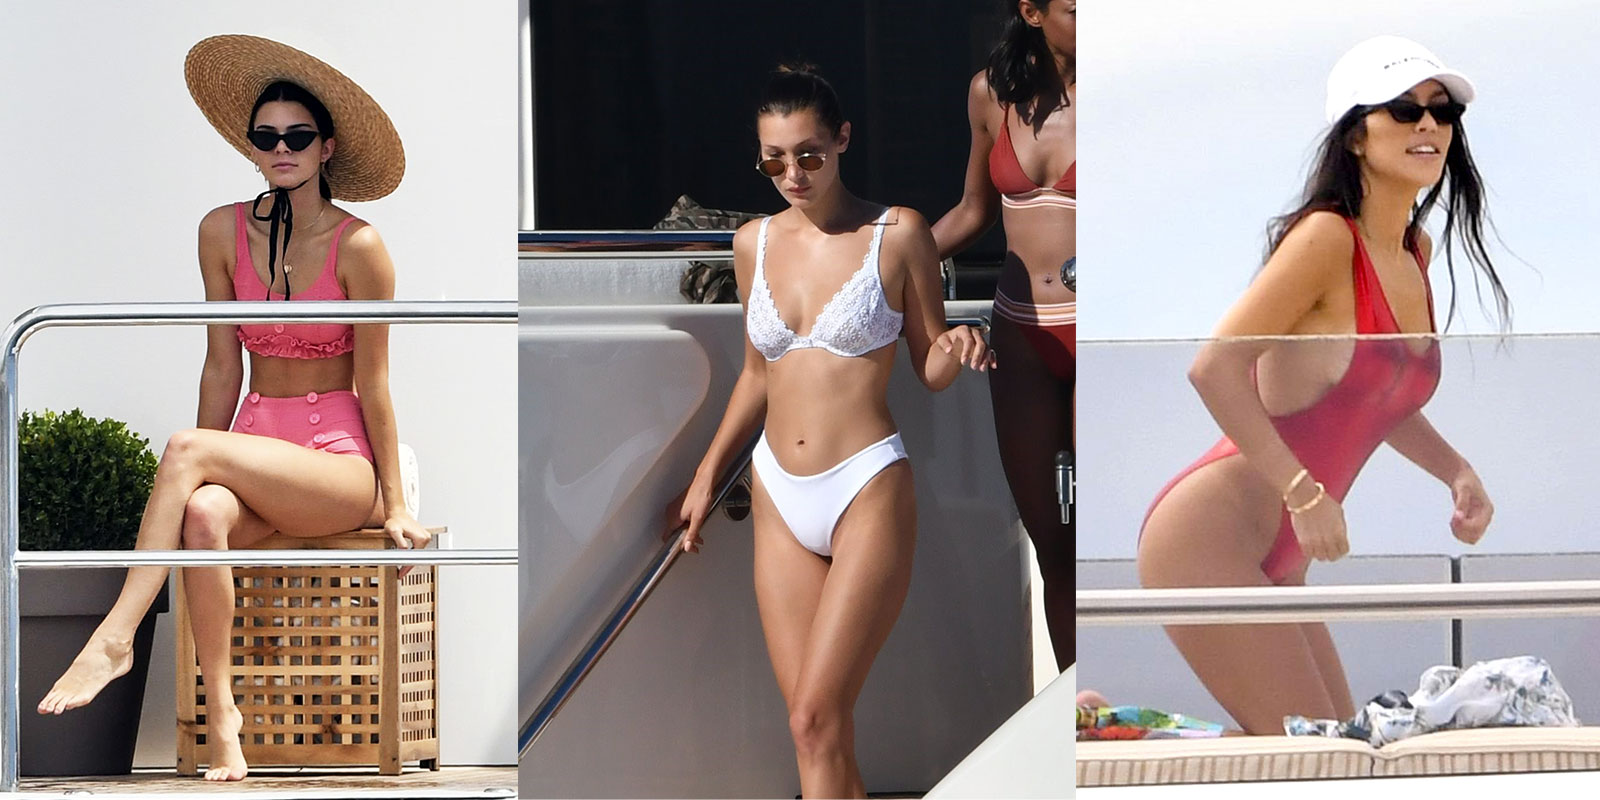 Summer swimwear trends to try include high-waist bikinis, white swimsuits and backless one-piece styles.